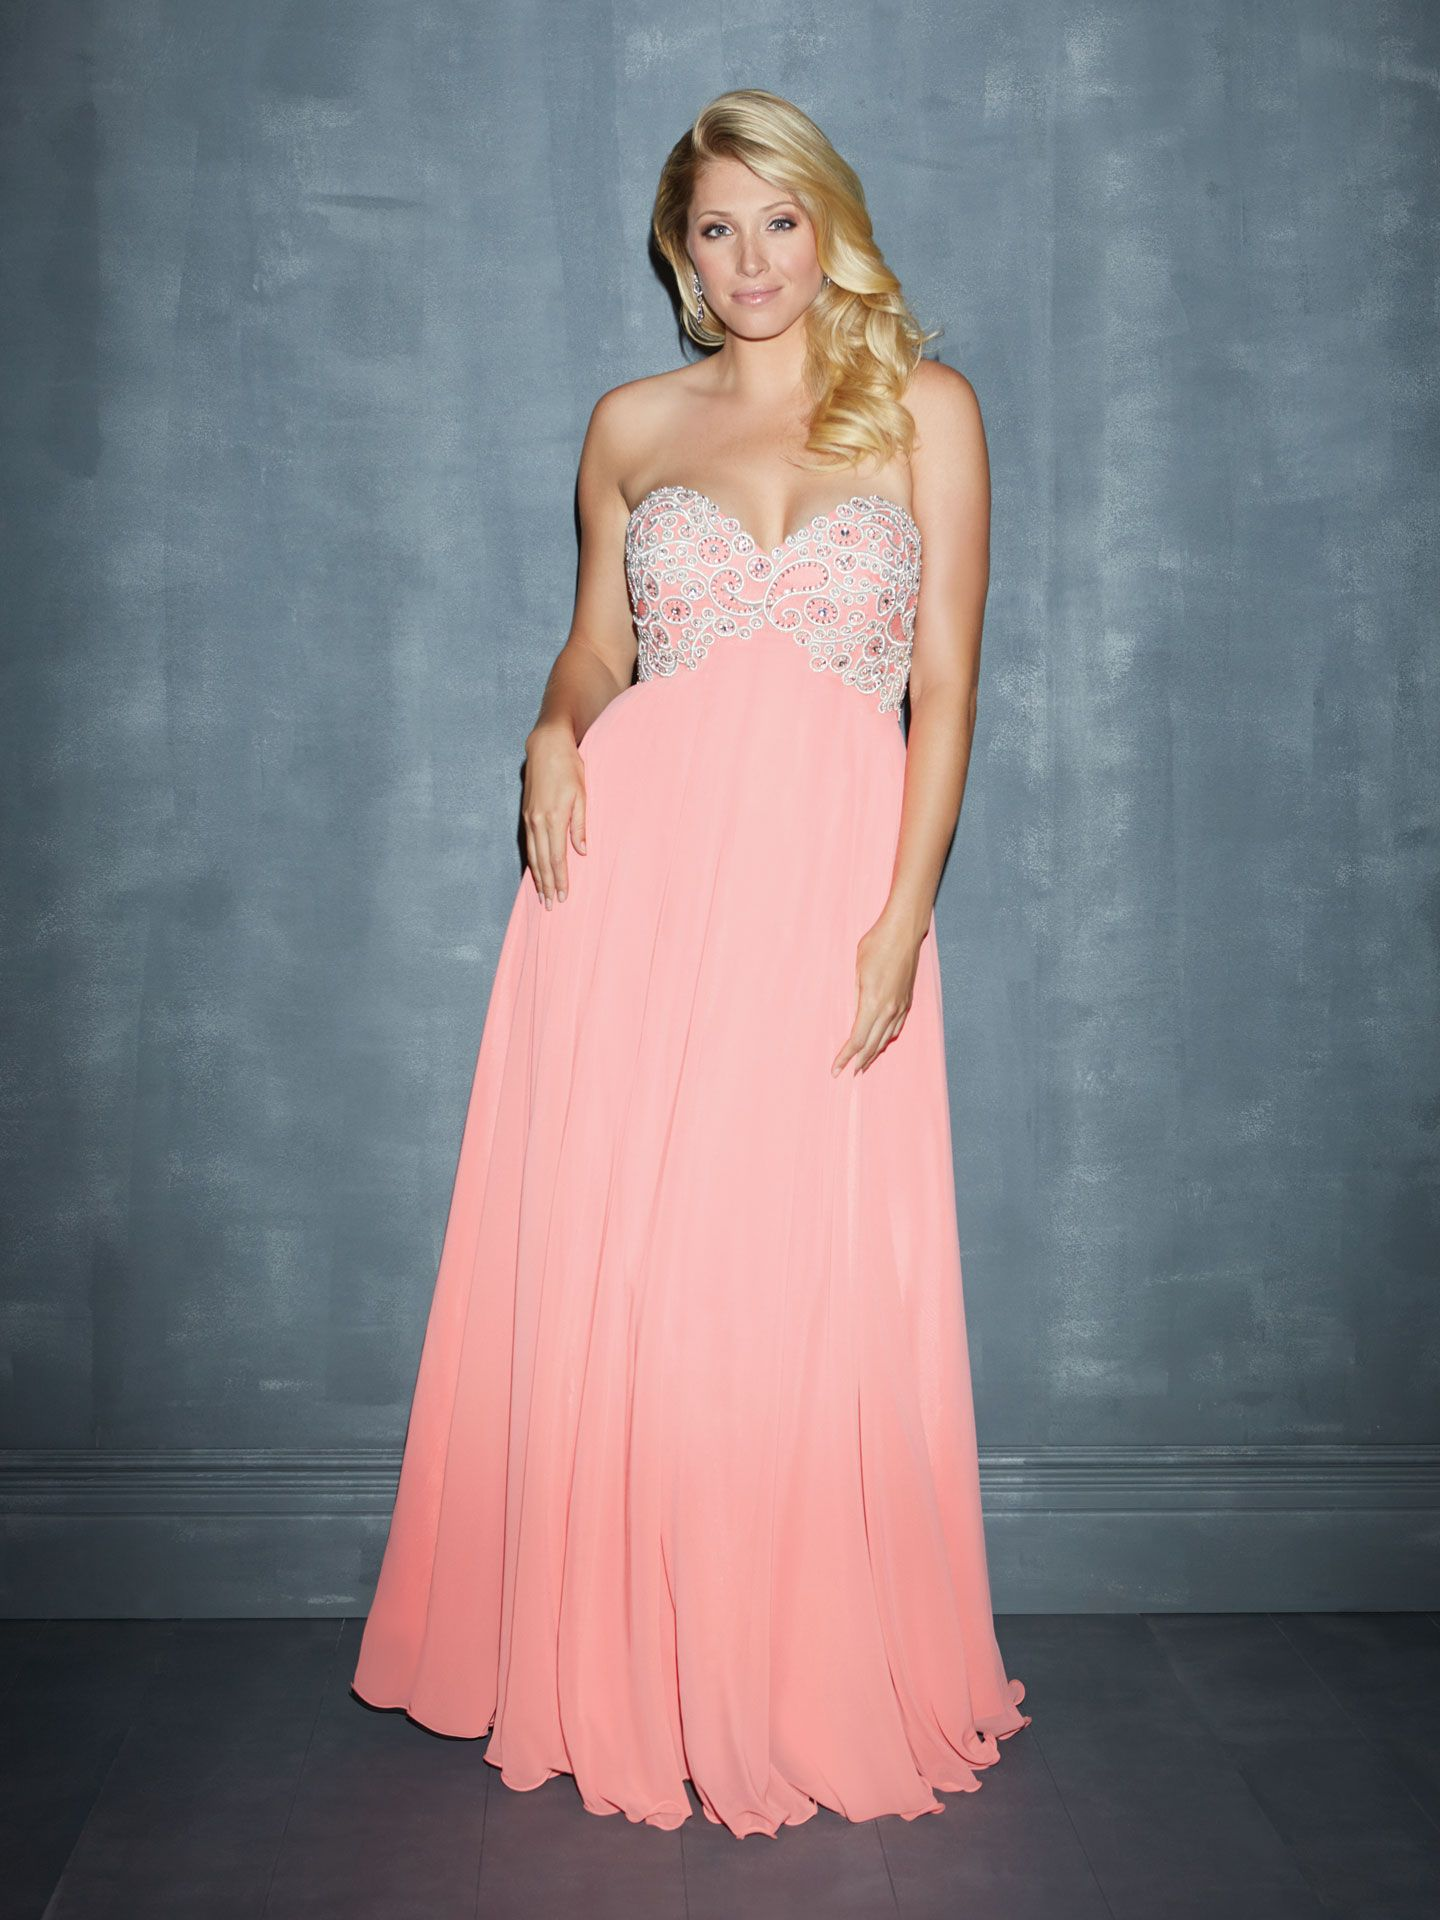 16 Hot AF Plus Size Prom Dresses That Will Slay Prom Night   Pinterest